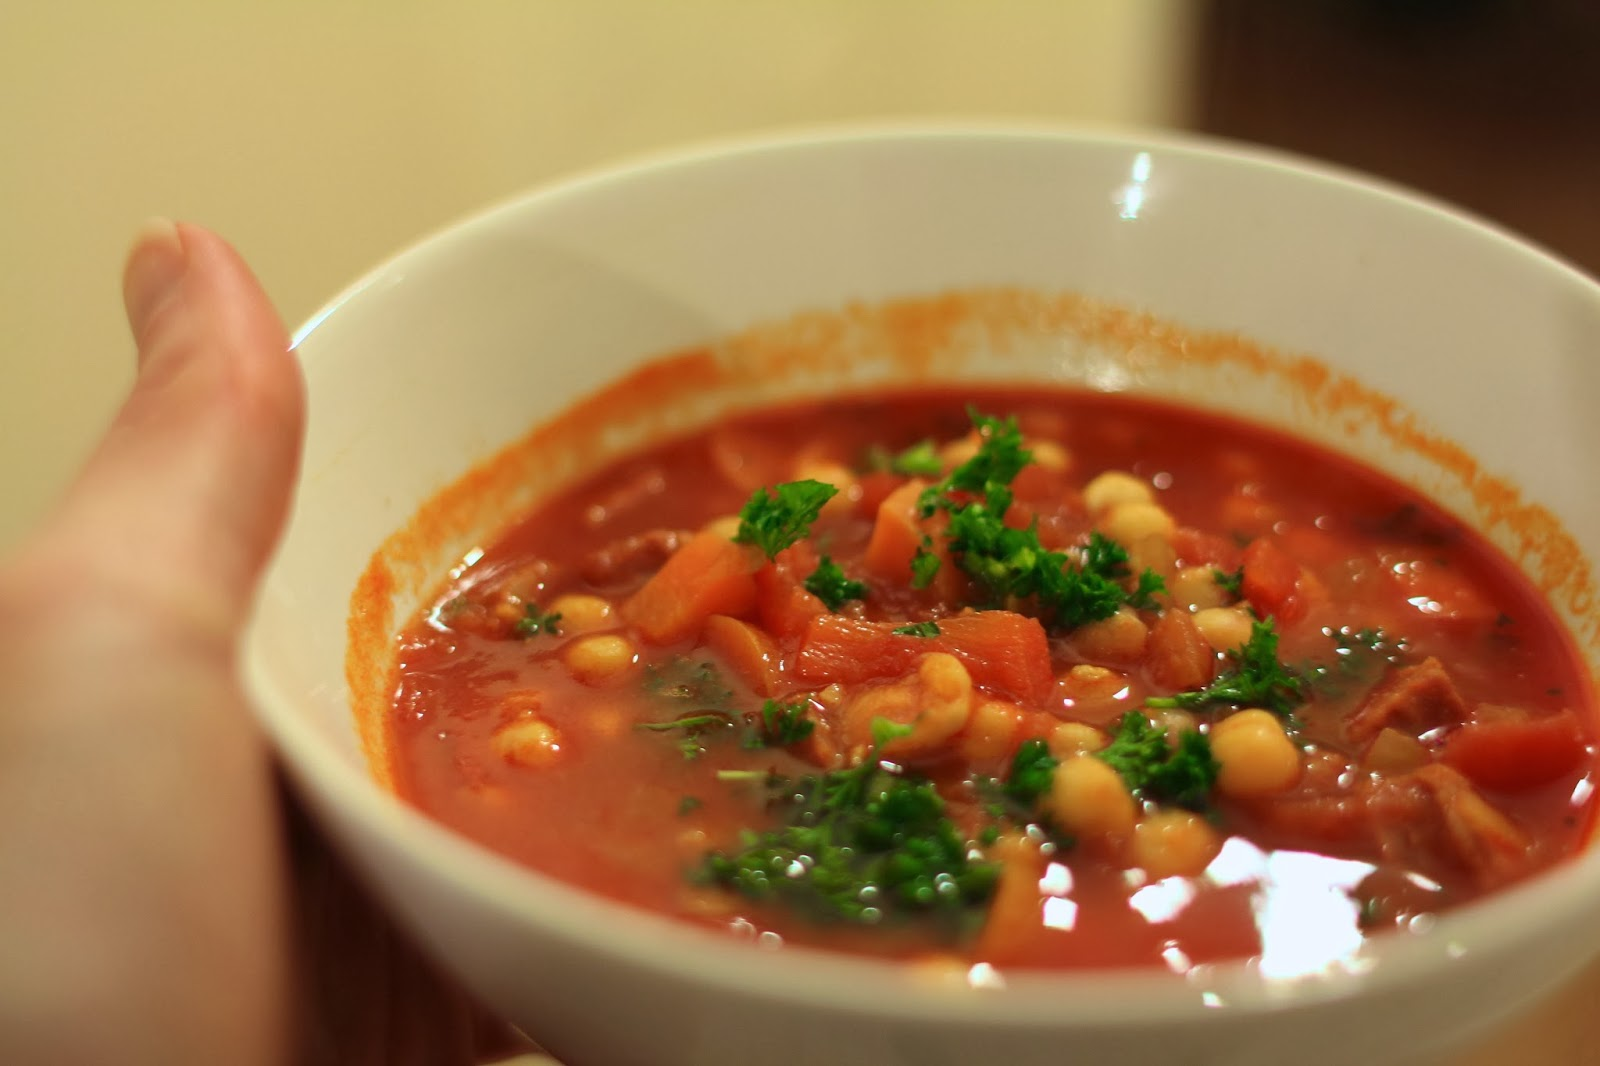 Chorizo and chickpea soup - Serves 2 adults easily with seconds (or ...